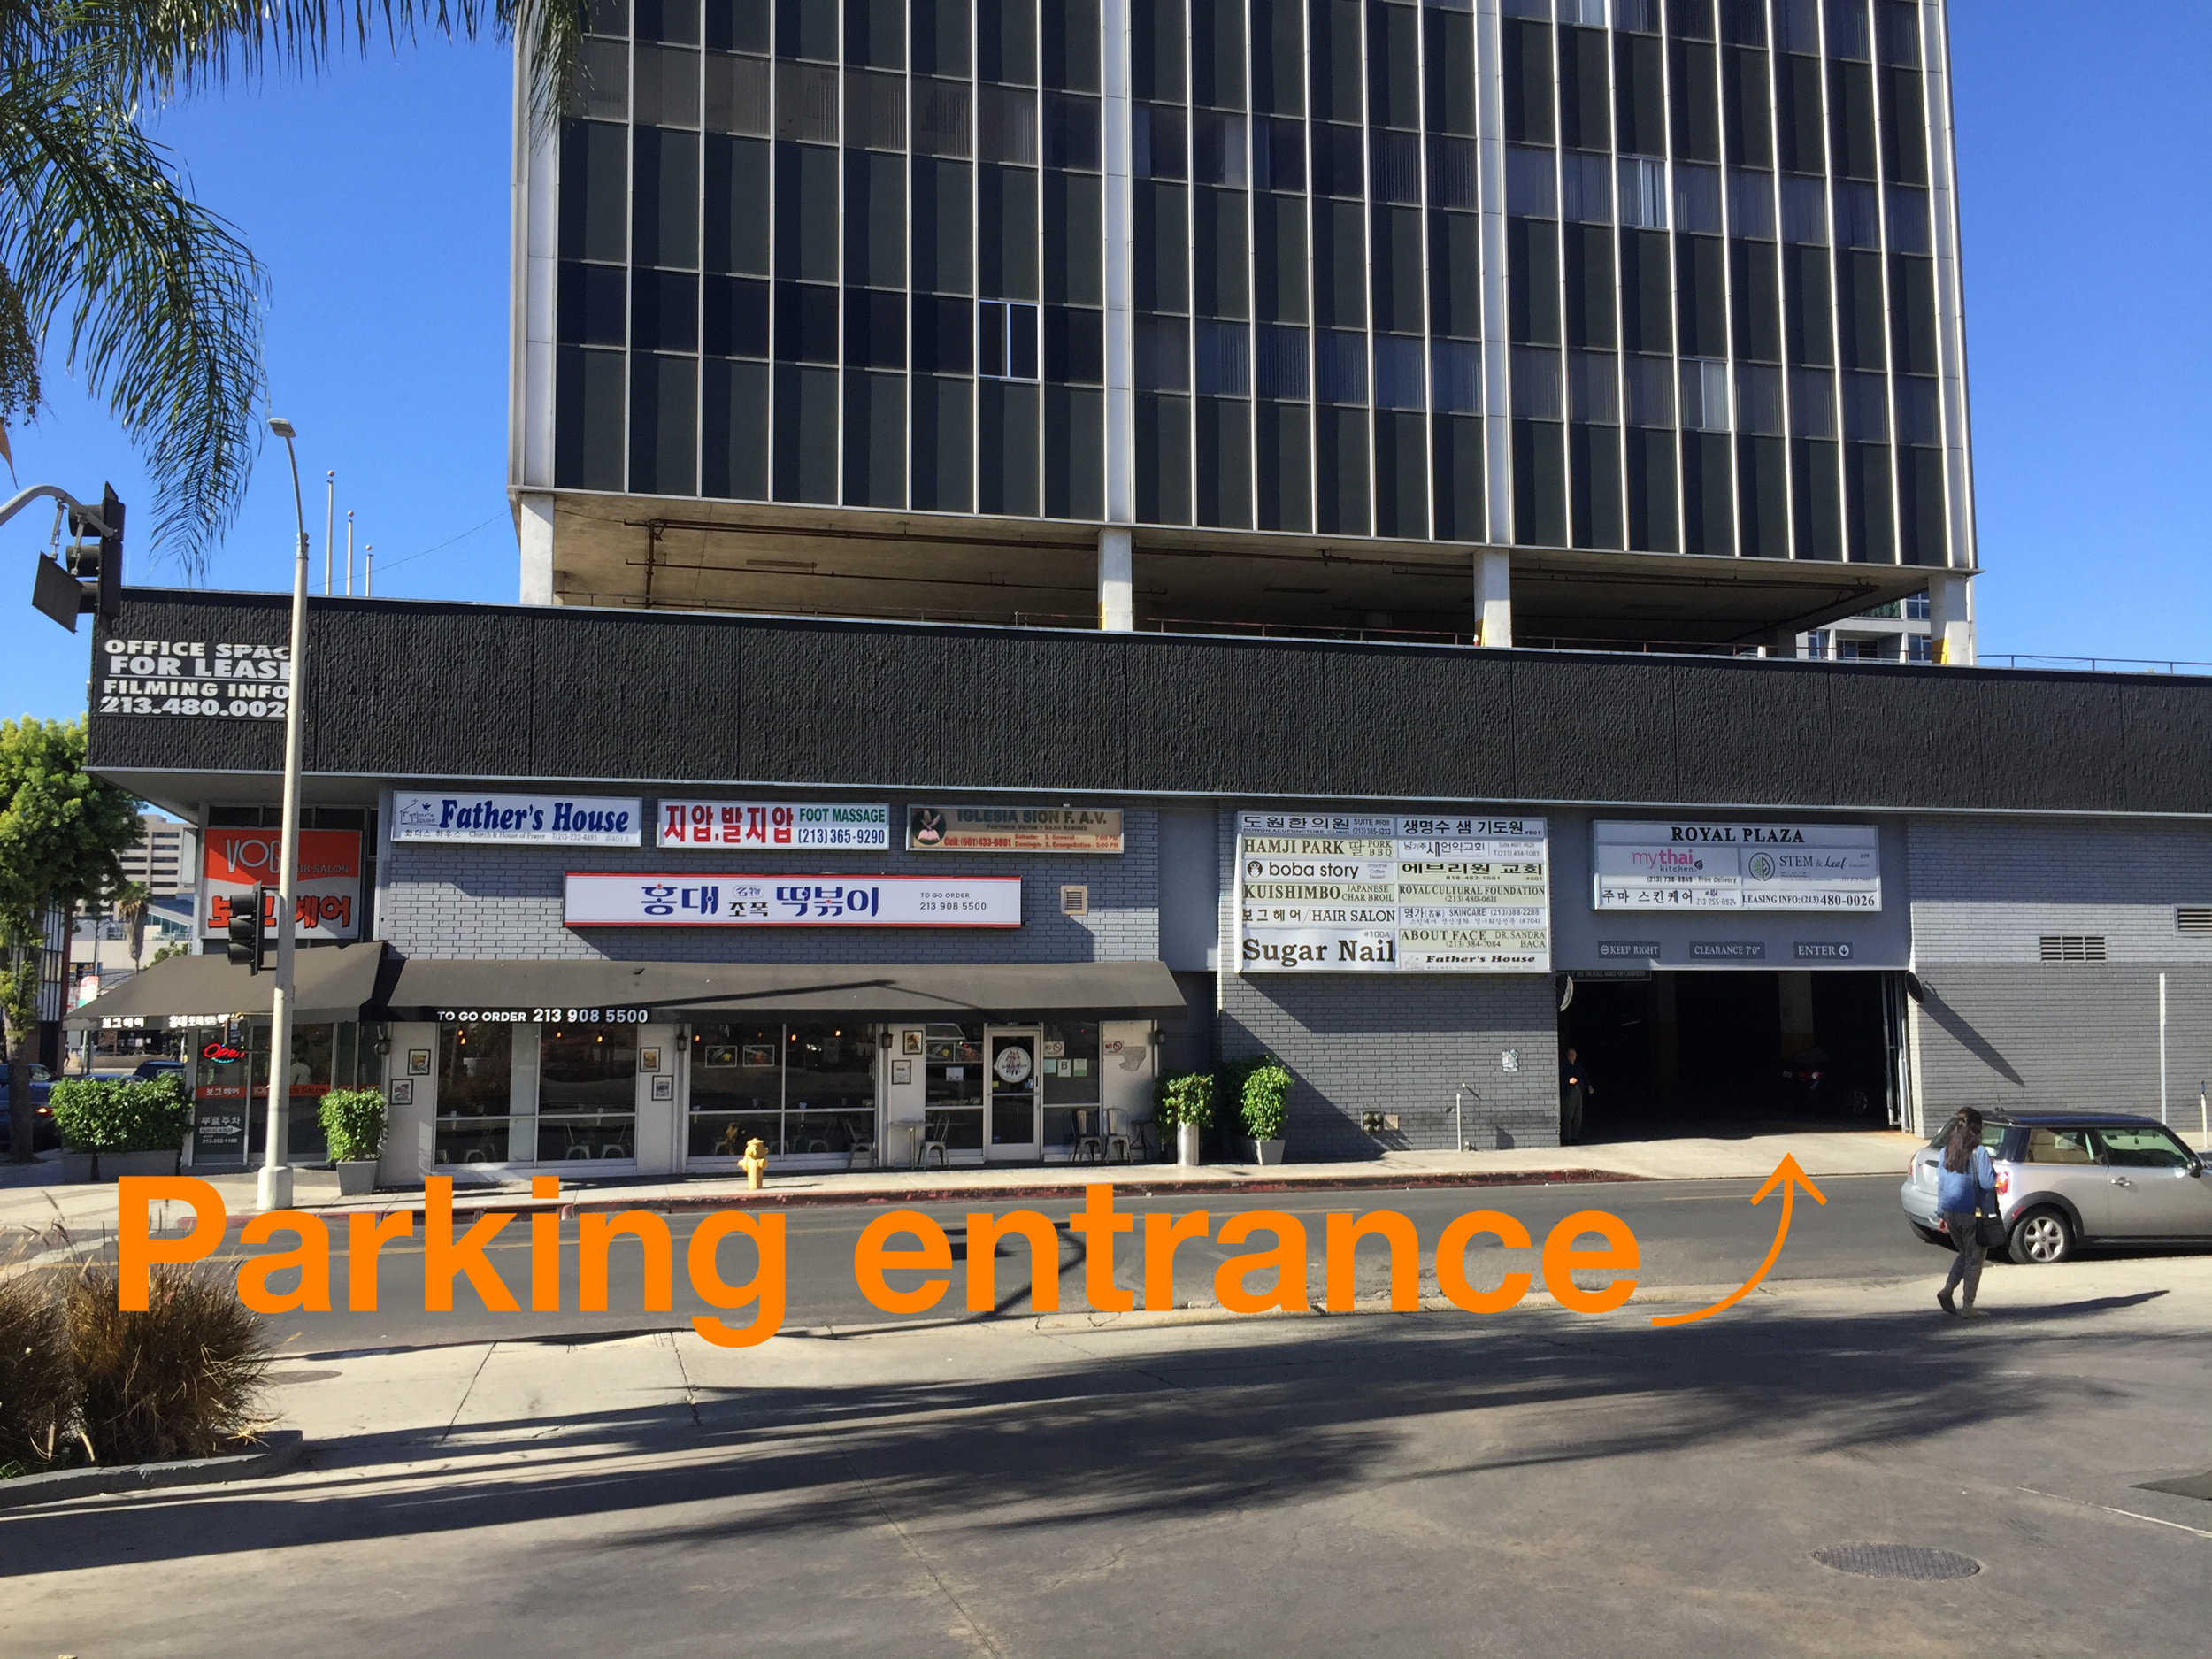 Our Location - Our facility is conveniently located in Koreatown Los Angeles. The entrance to the parking lot is on Catalina St. right across the Cheveron Gas Station. One hour parking is free.